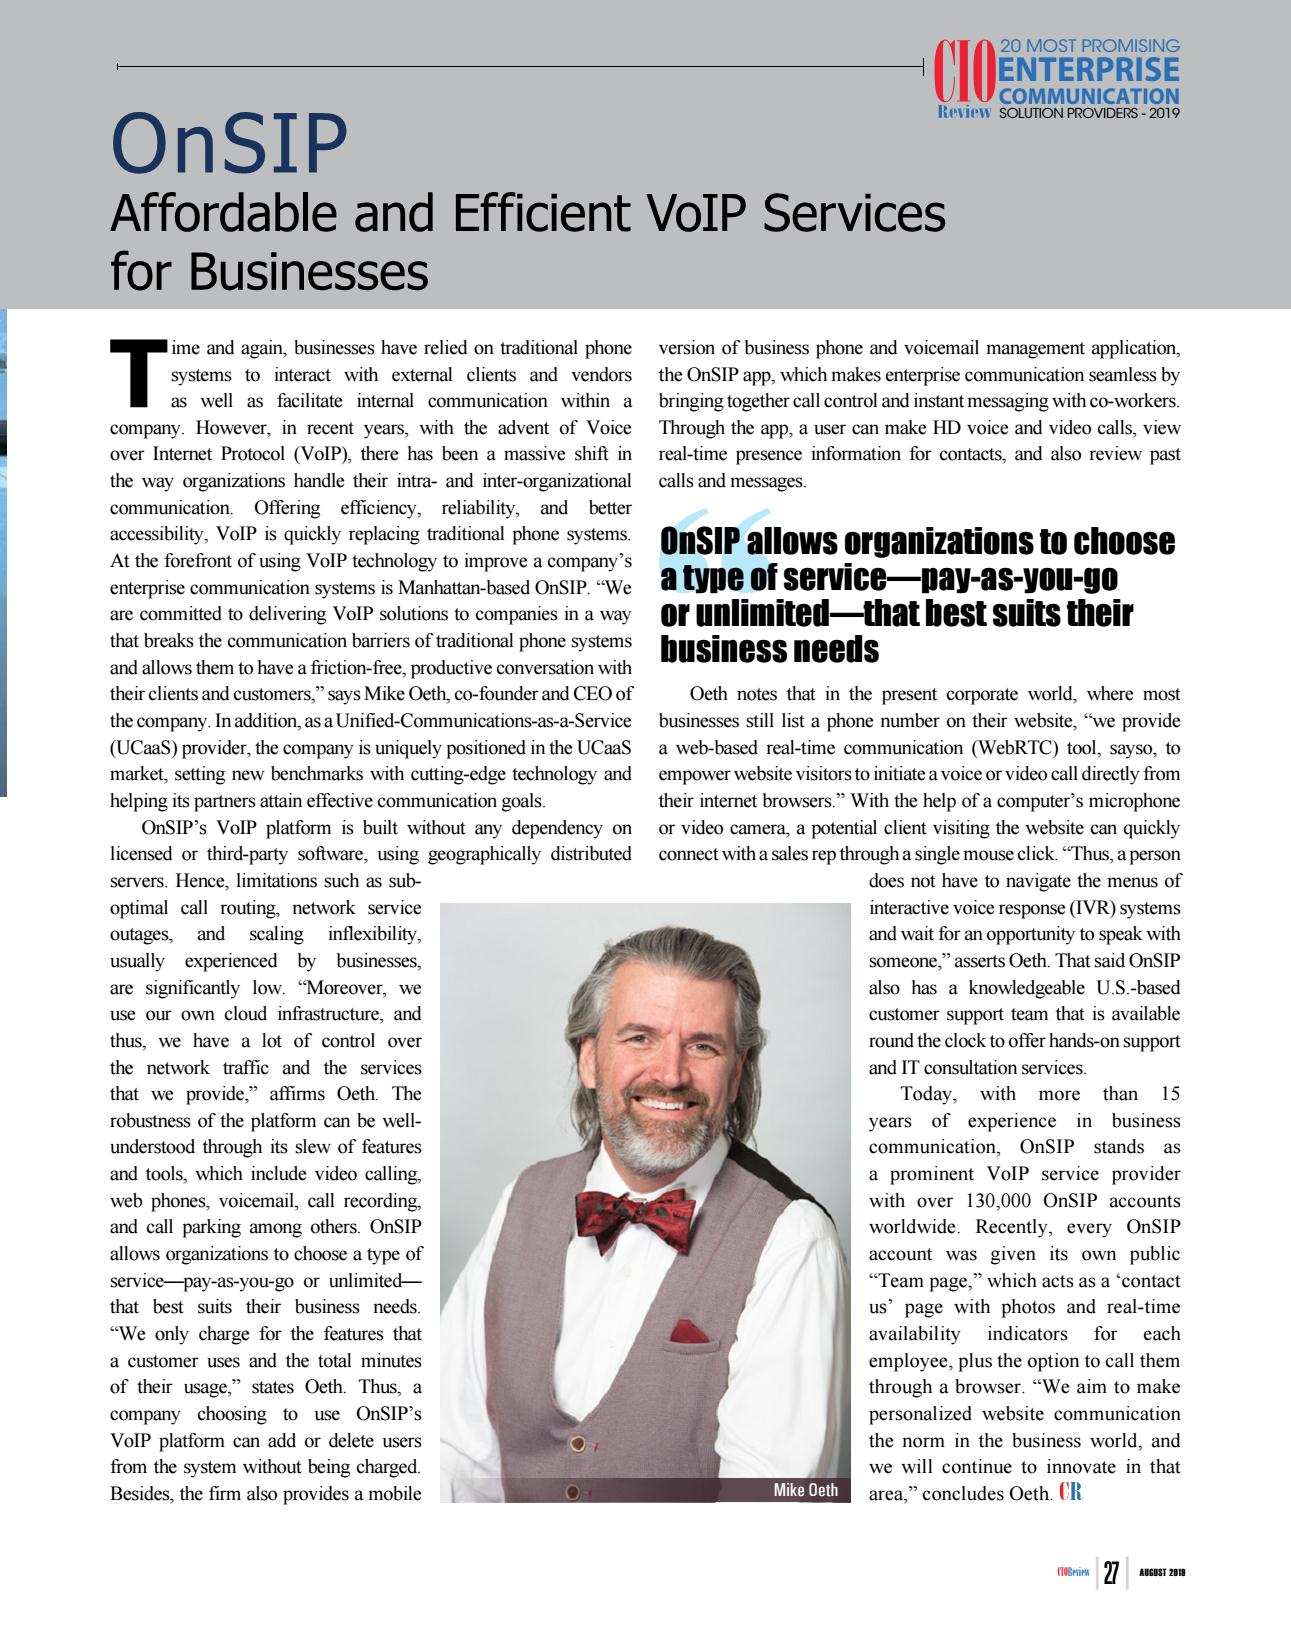 Link to full CIOReview article.